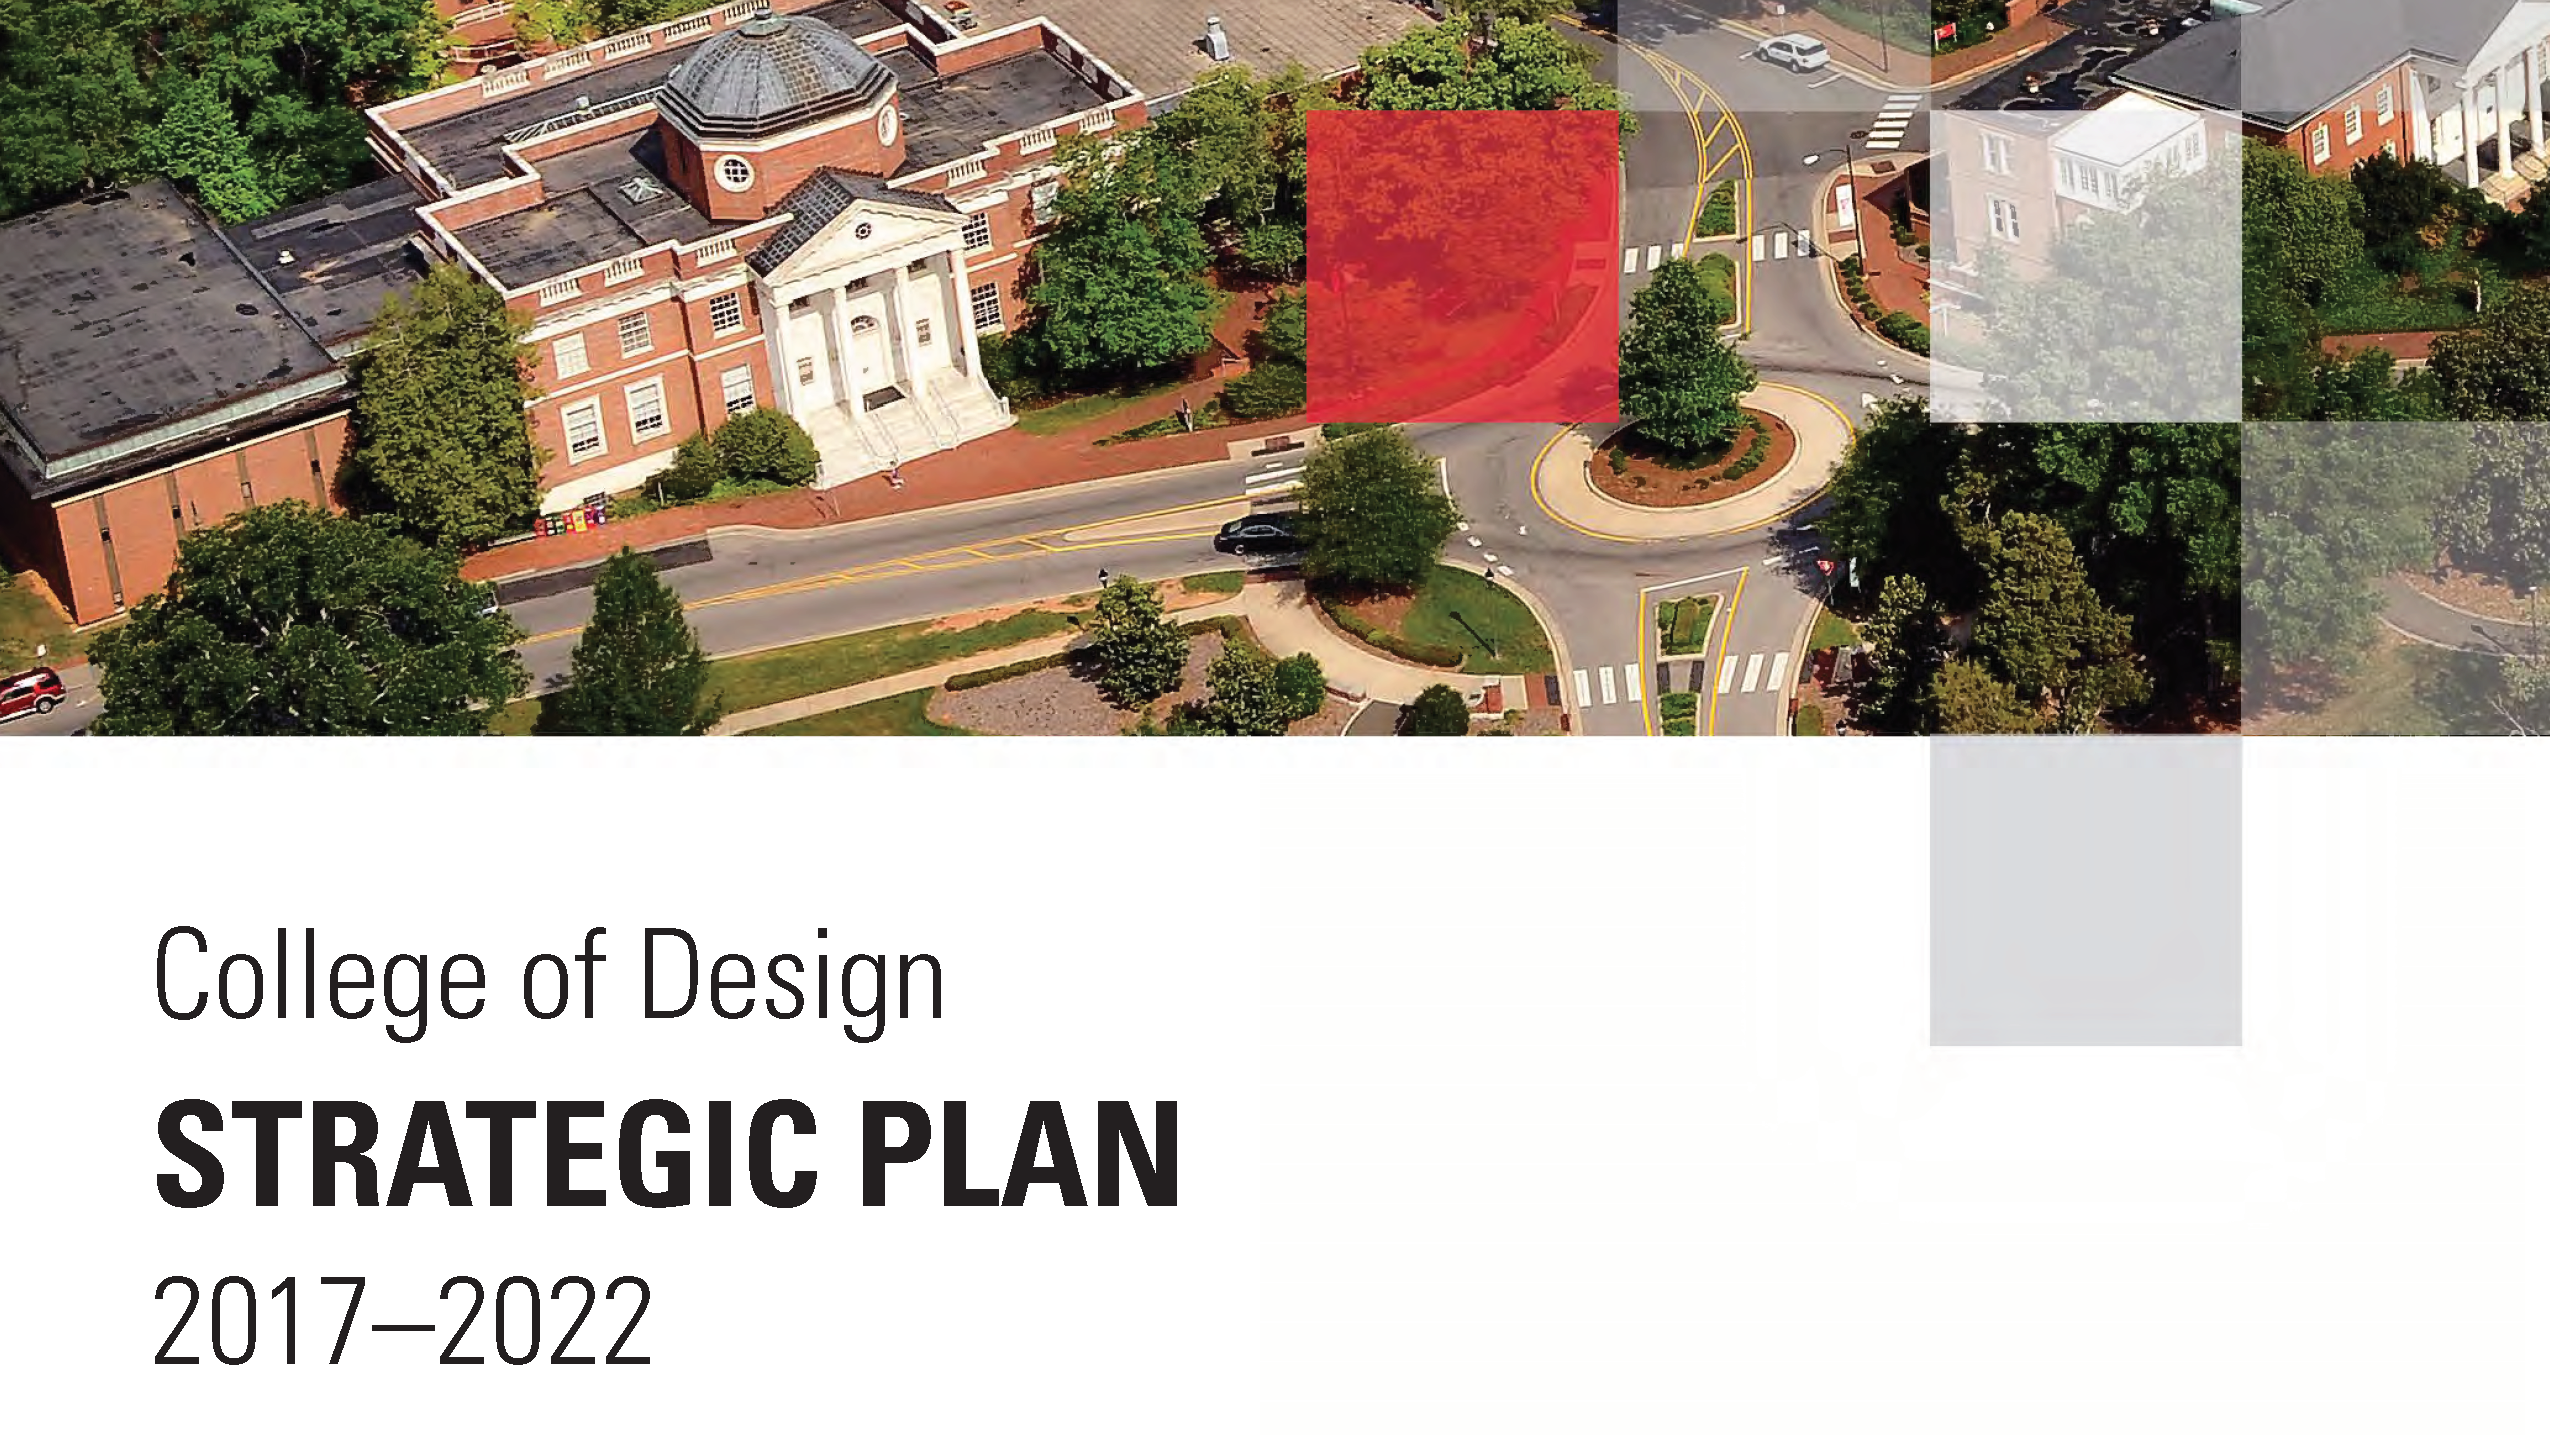 College of Design Strategic Plan